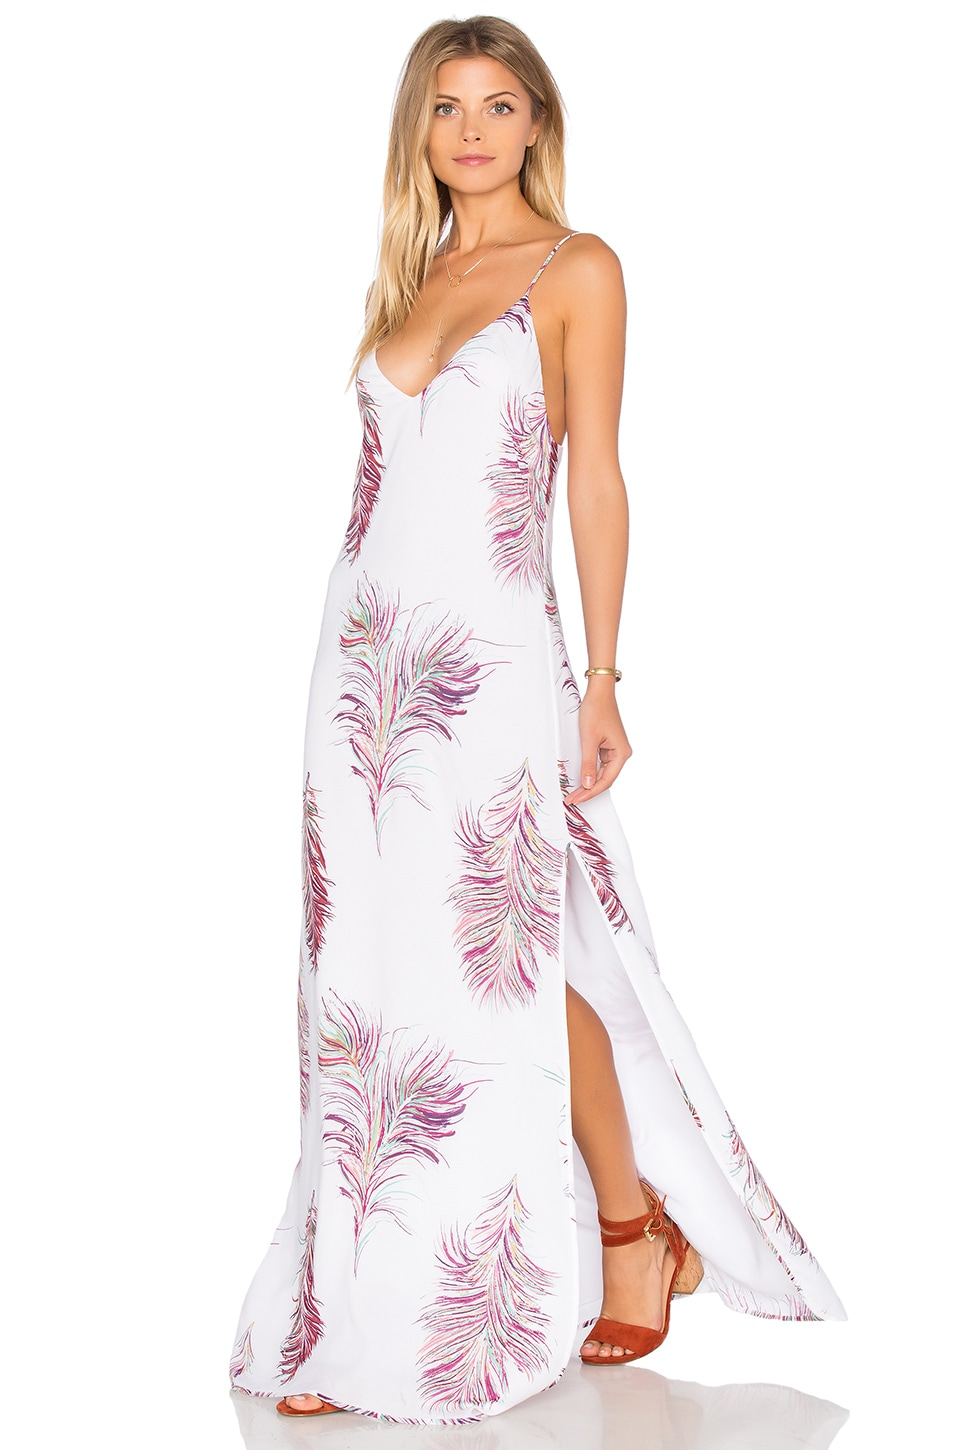 0c41cc06f386 Vix Swimwear Milos Maxi Dress in Krishna White | REVOLVE